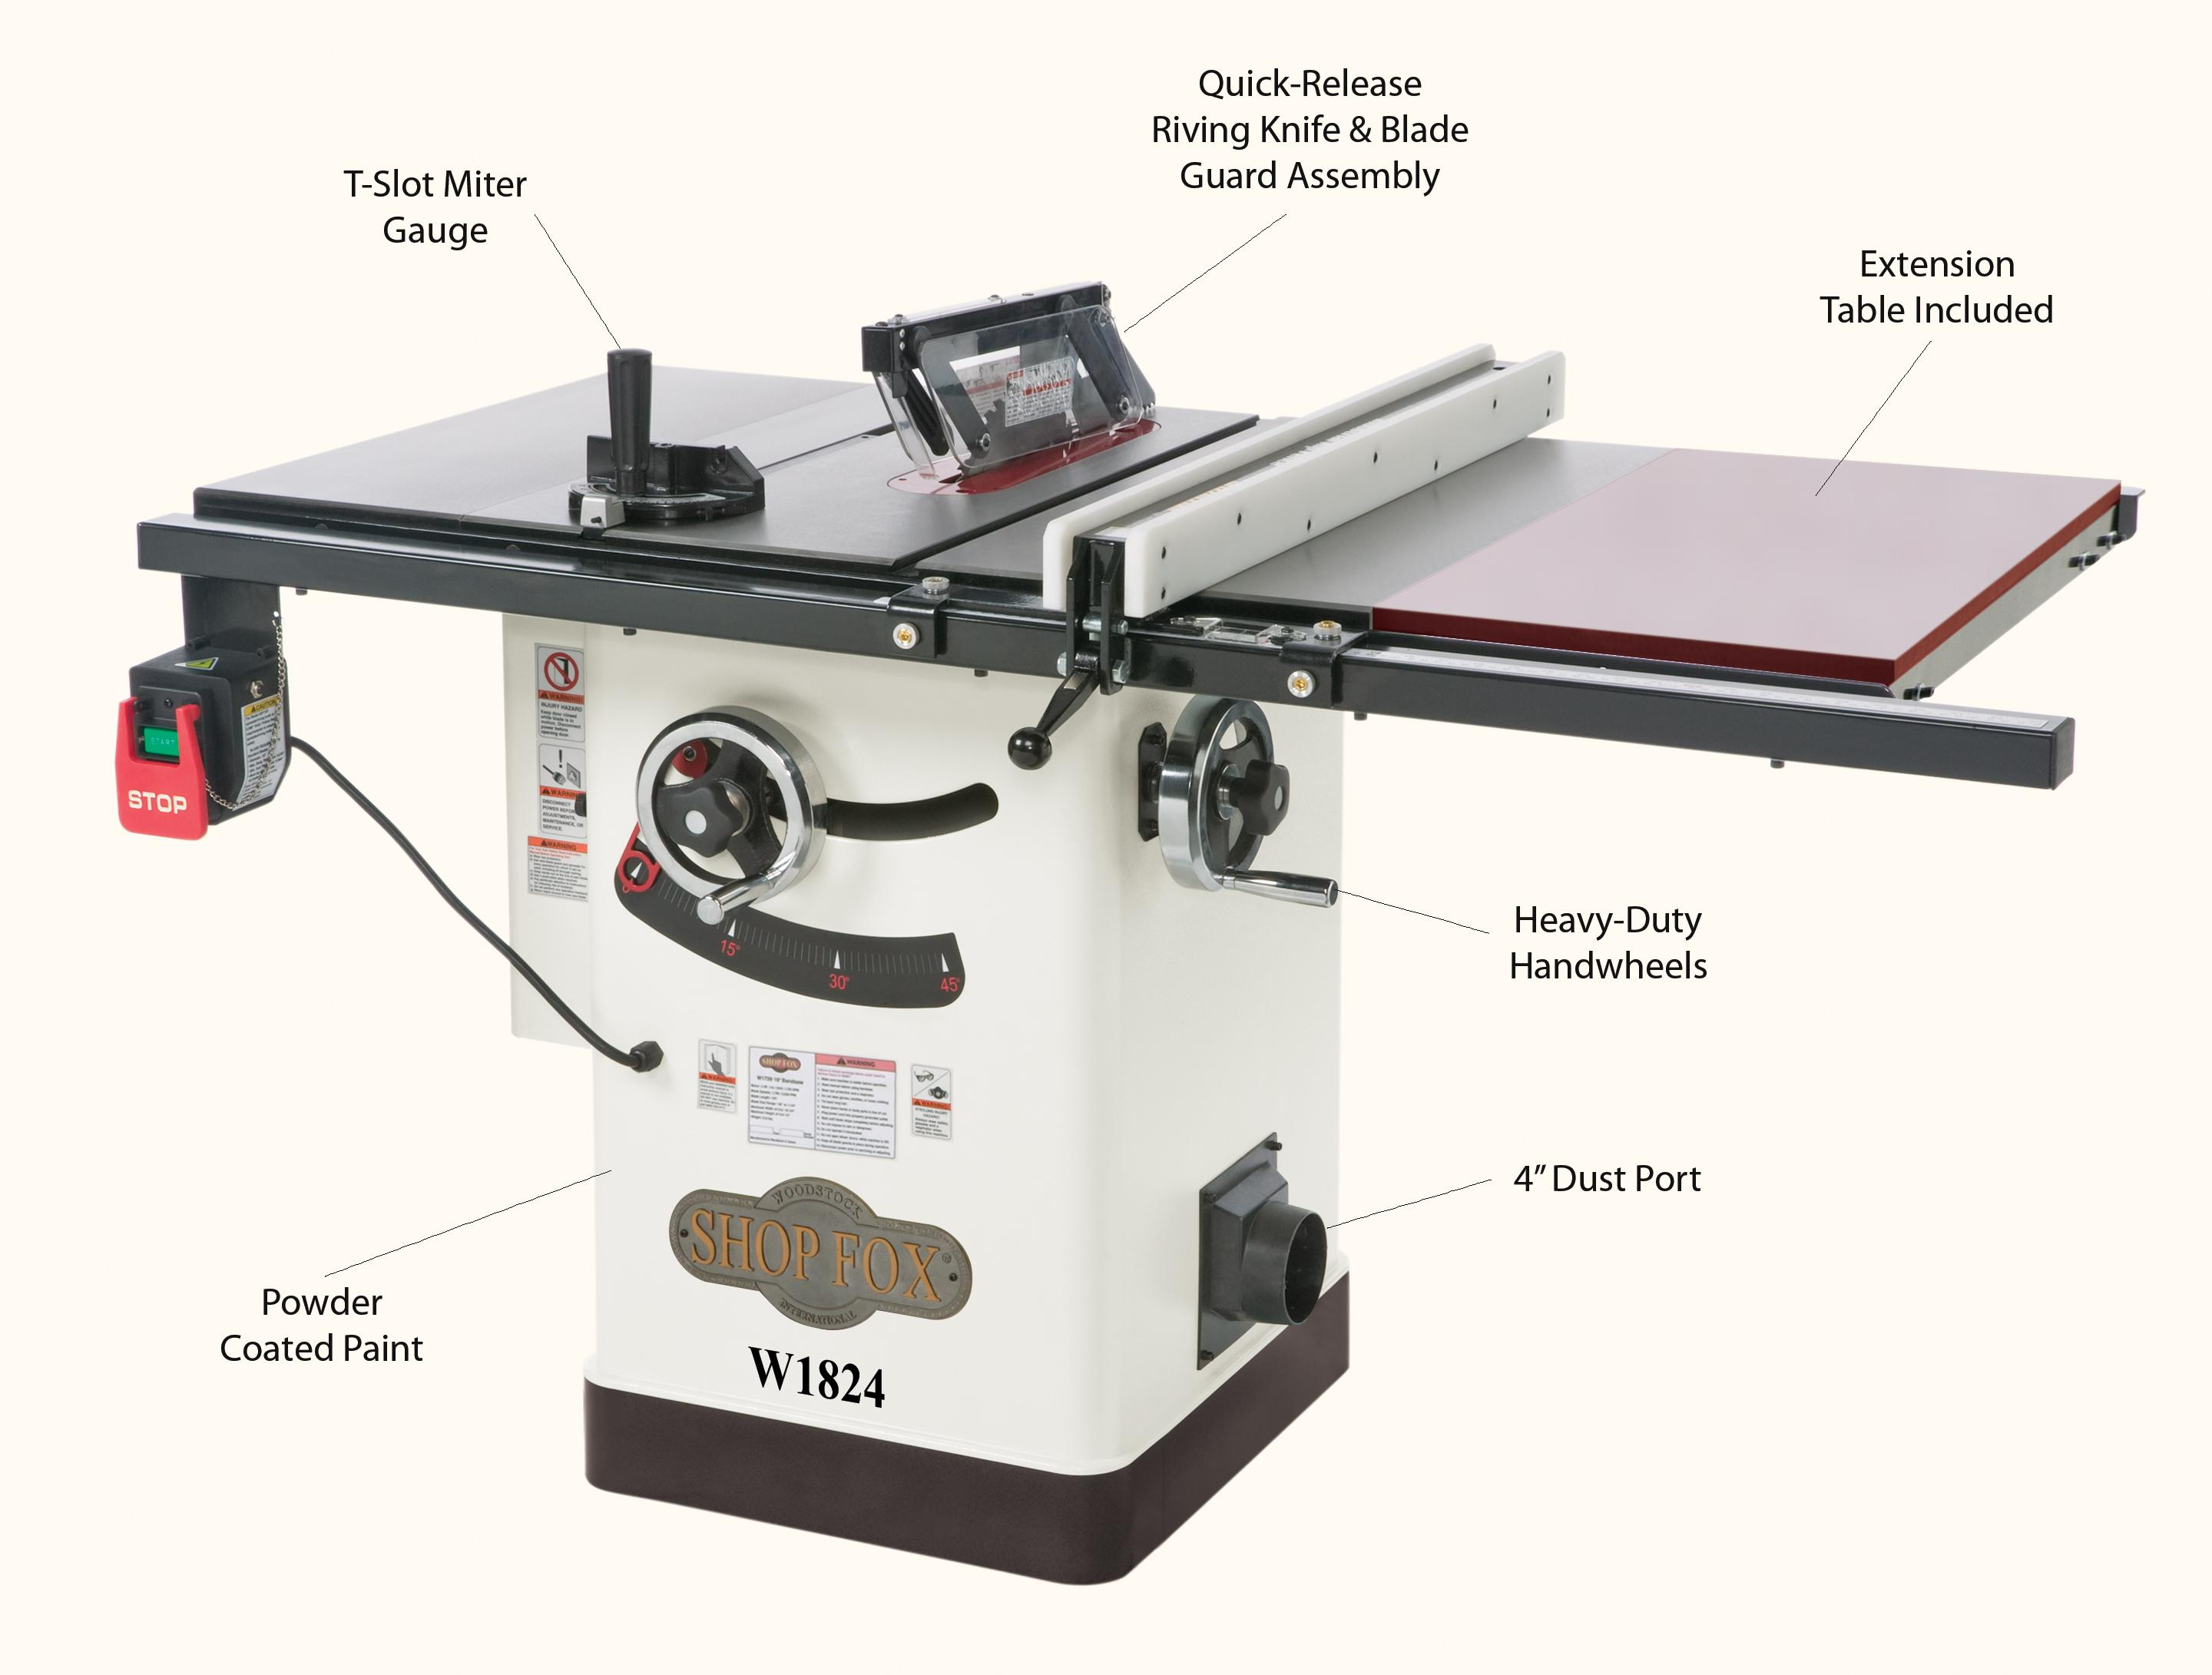 Shop fox w1824 hybrid table saw with extension table power table view larger greentooth Gallery